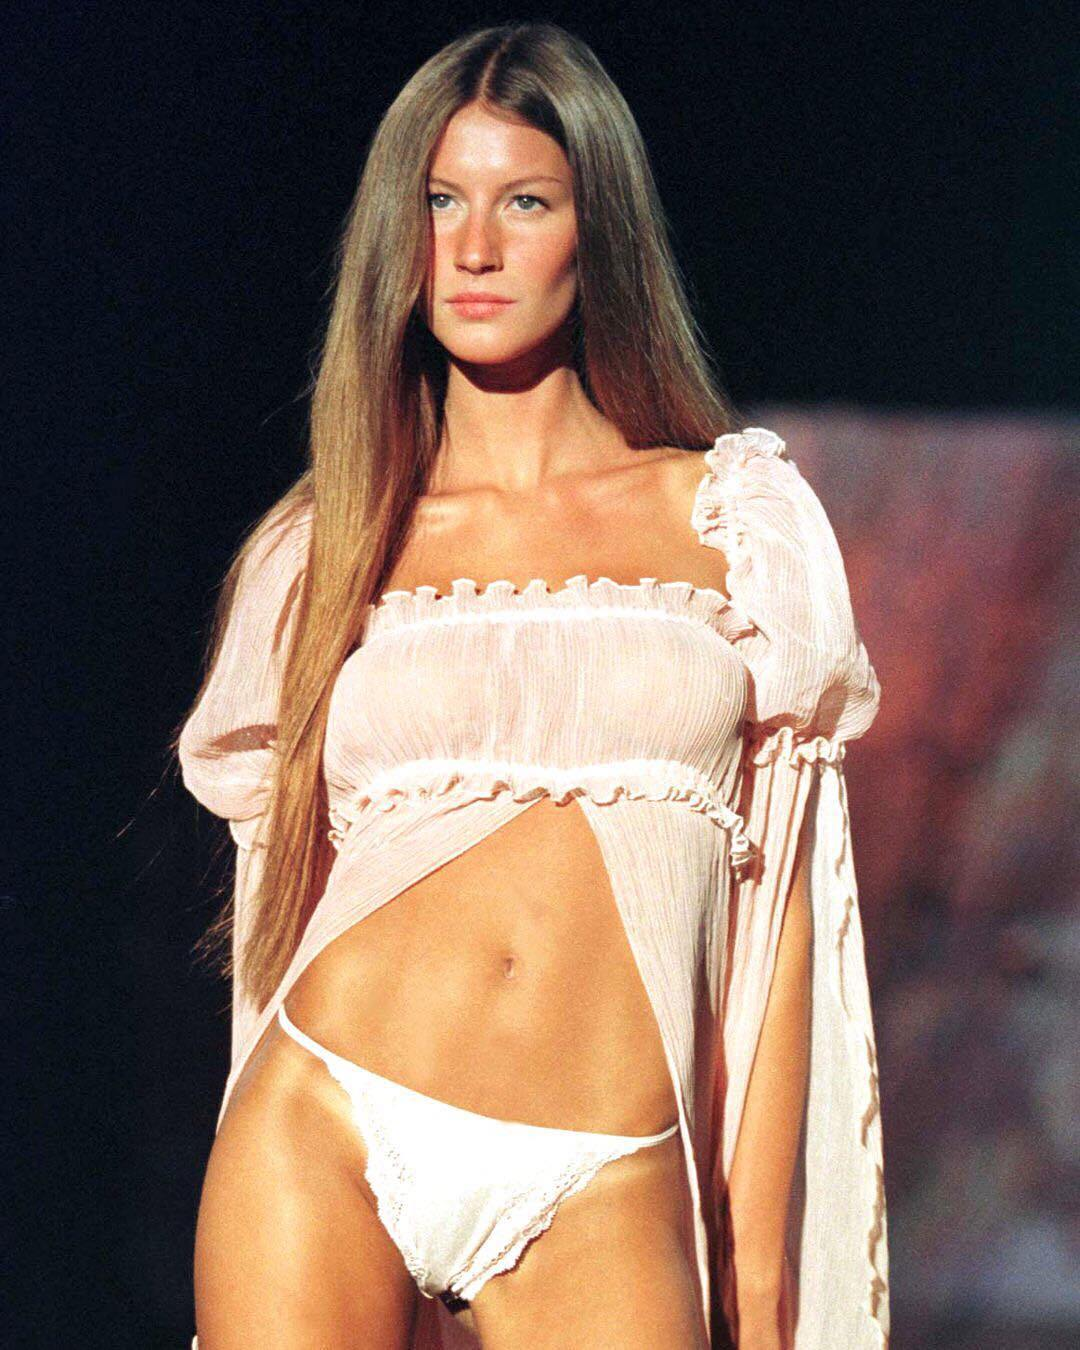 gisele bundchen 1999 victoria's secret